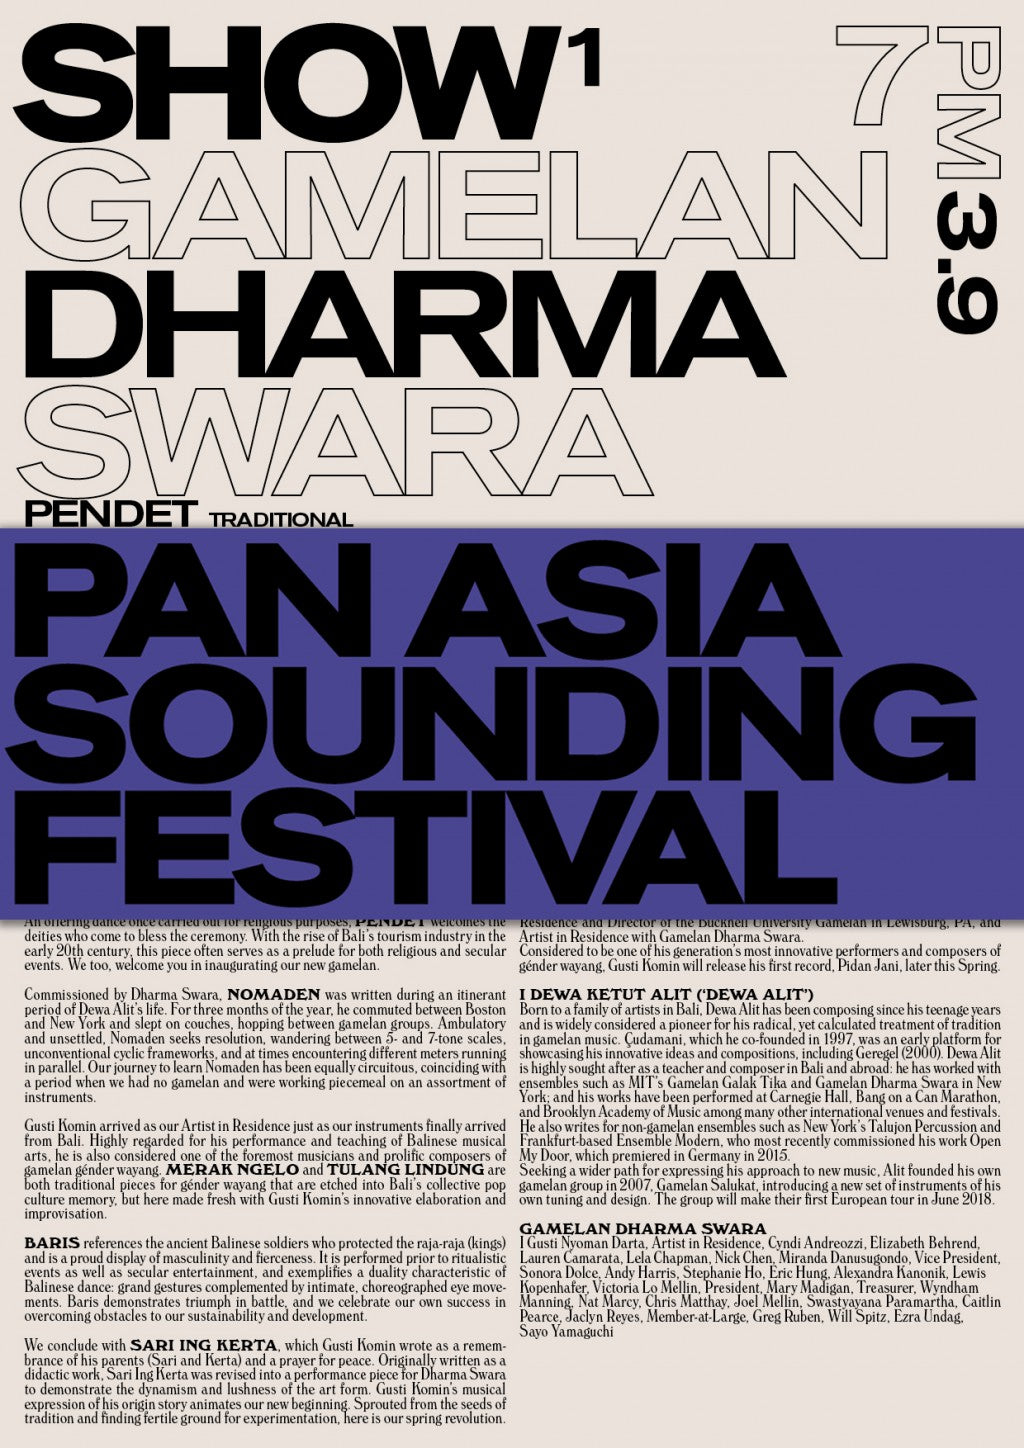 Stille Studio: Pan Asia Sounding Festival